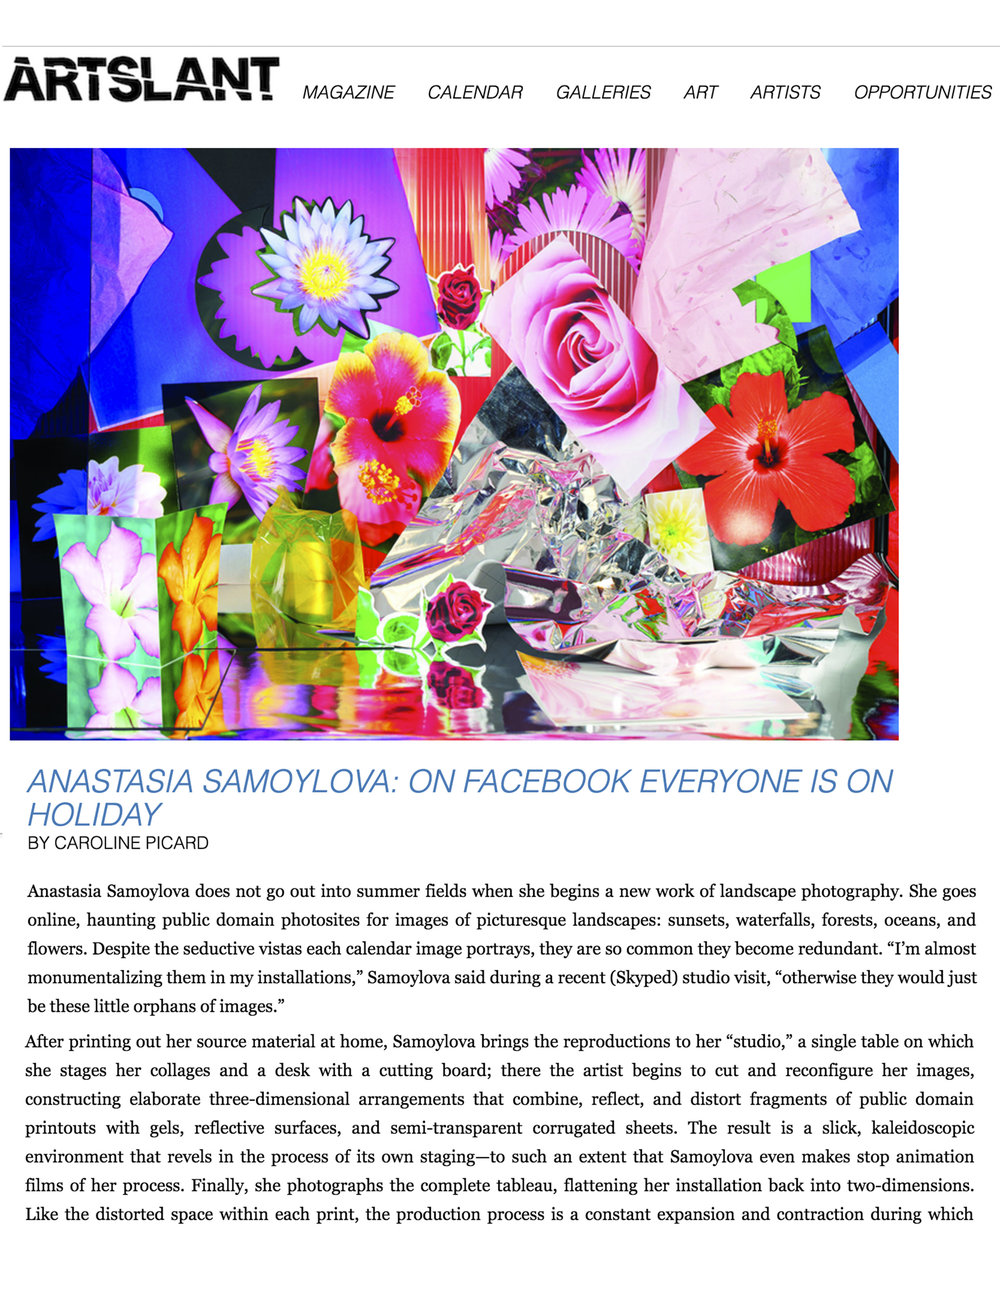 Anastasia Samoylova: On Facebook Everyone is On Holiday.  Caroline Picard, ArtSlant